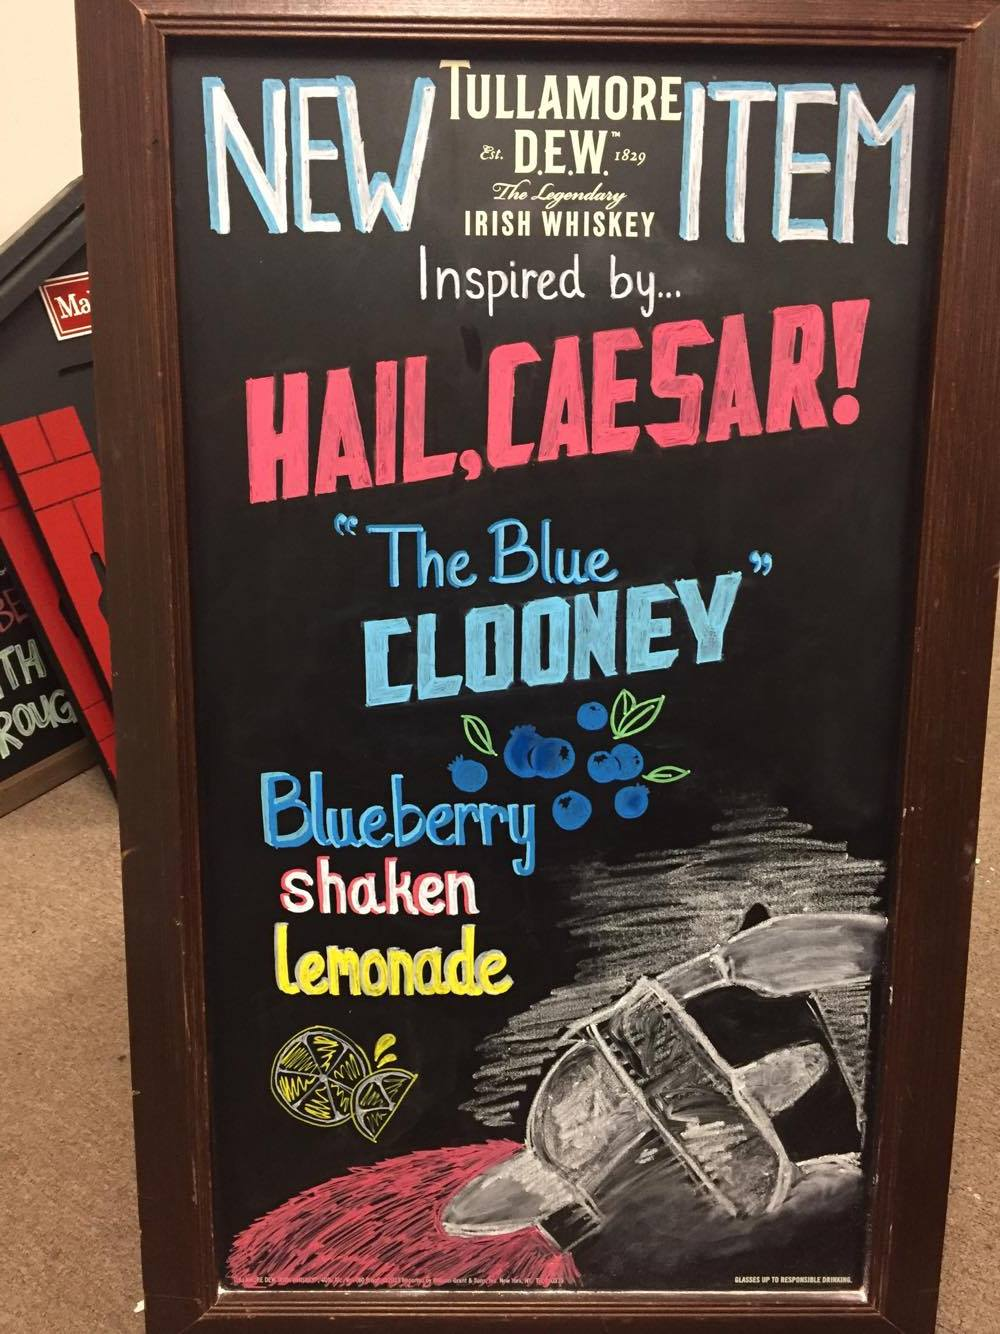 The Blue Clooney